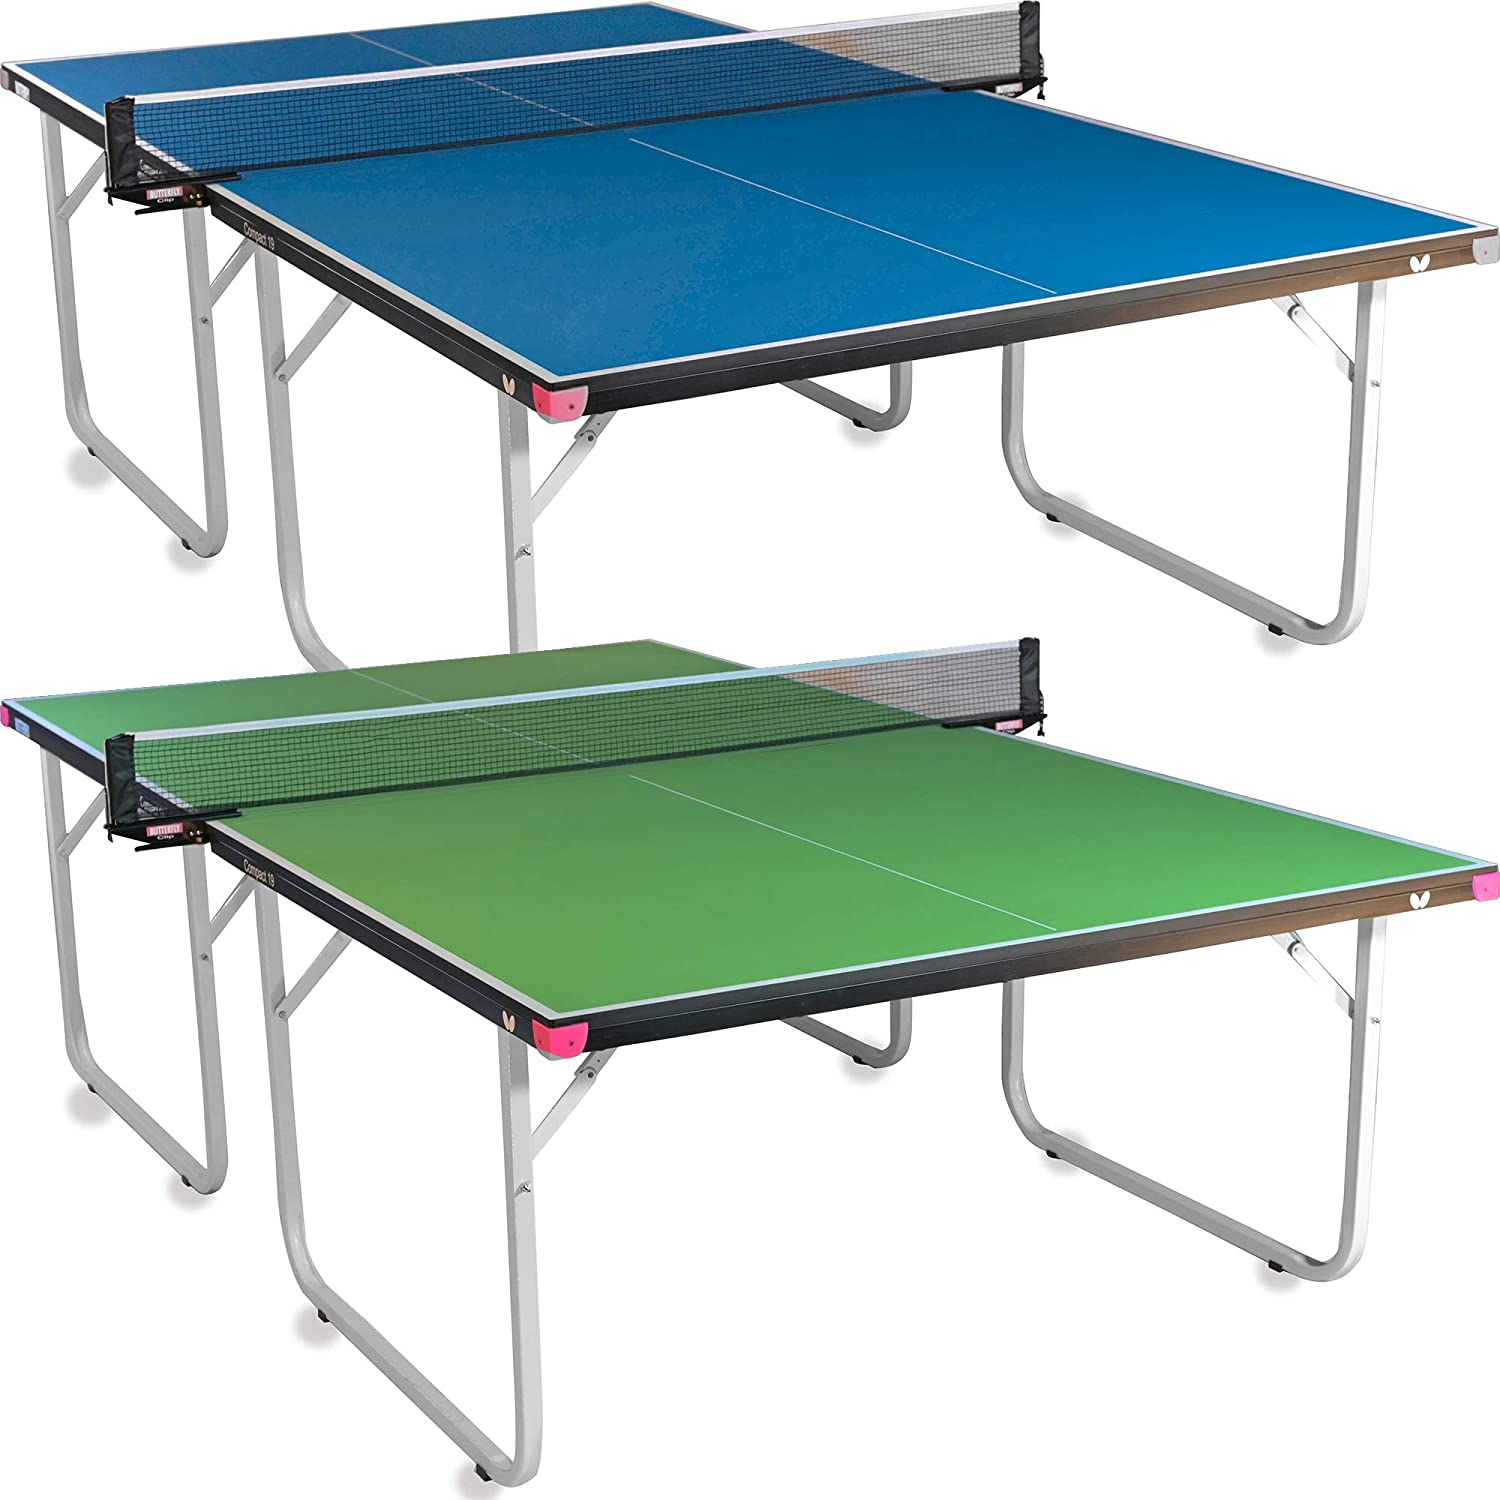 Butterfly Compact Large-scale sale 19 Ping Pong Table Foldable Tab mart Tennis